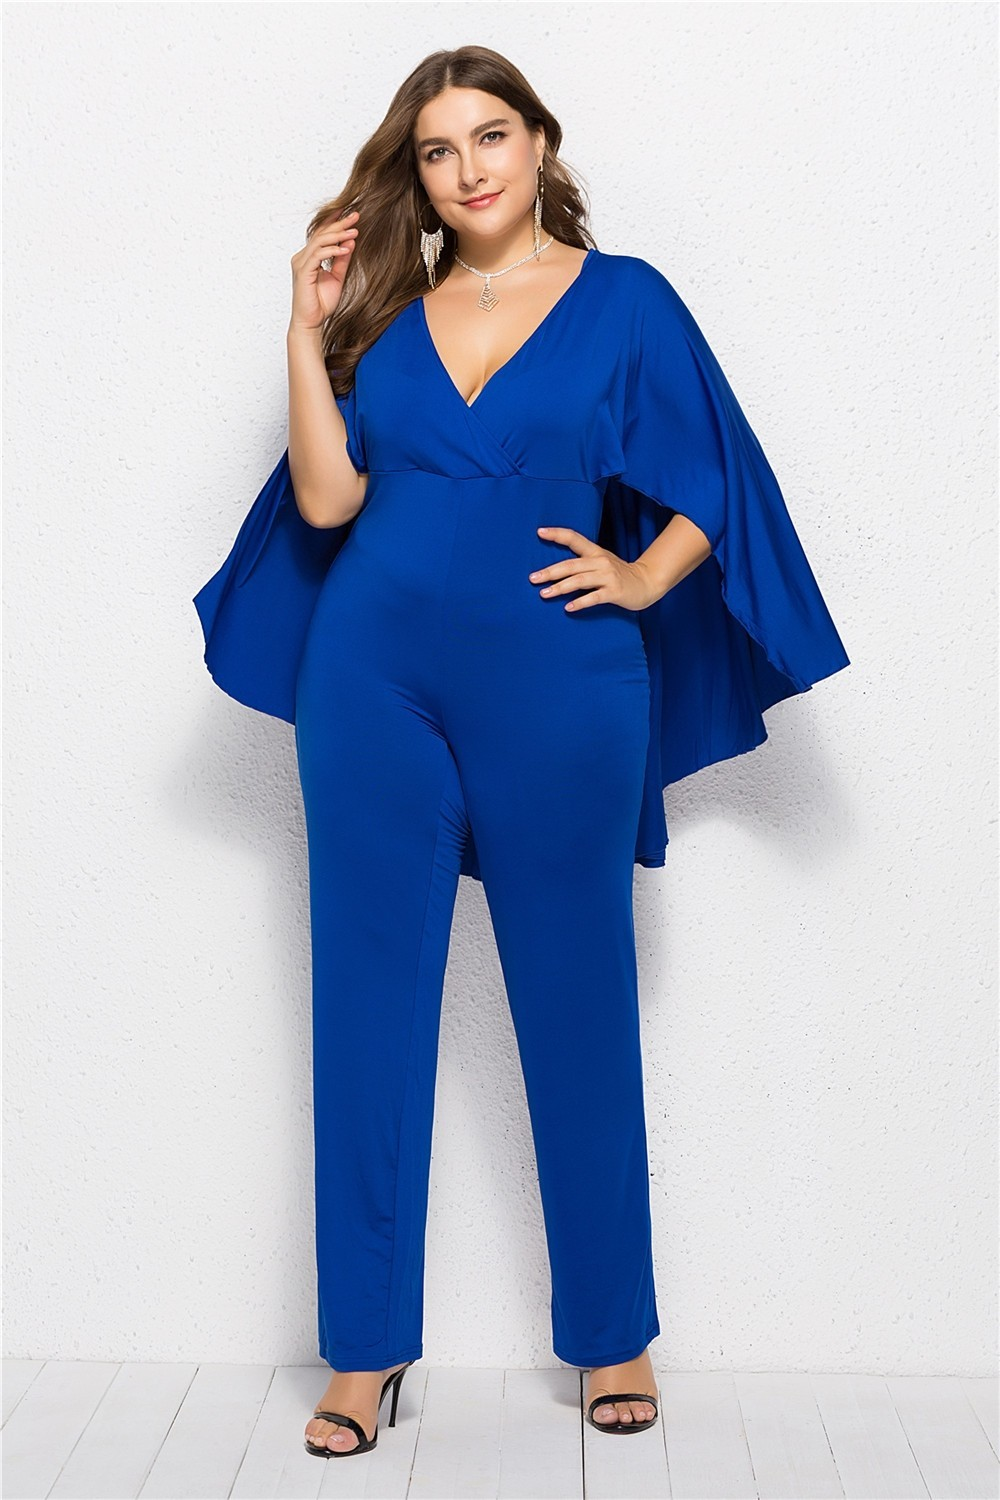 883e3e2449f Zoom · Charming Deep V Neck Royal Woman Clothing Plus Size Party Evening  Jumpsuit With Cape